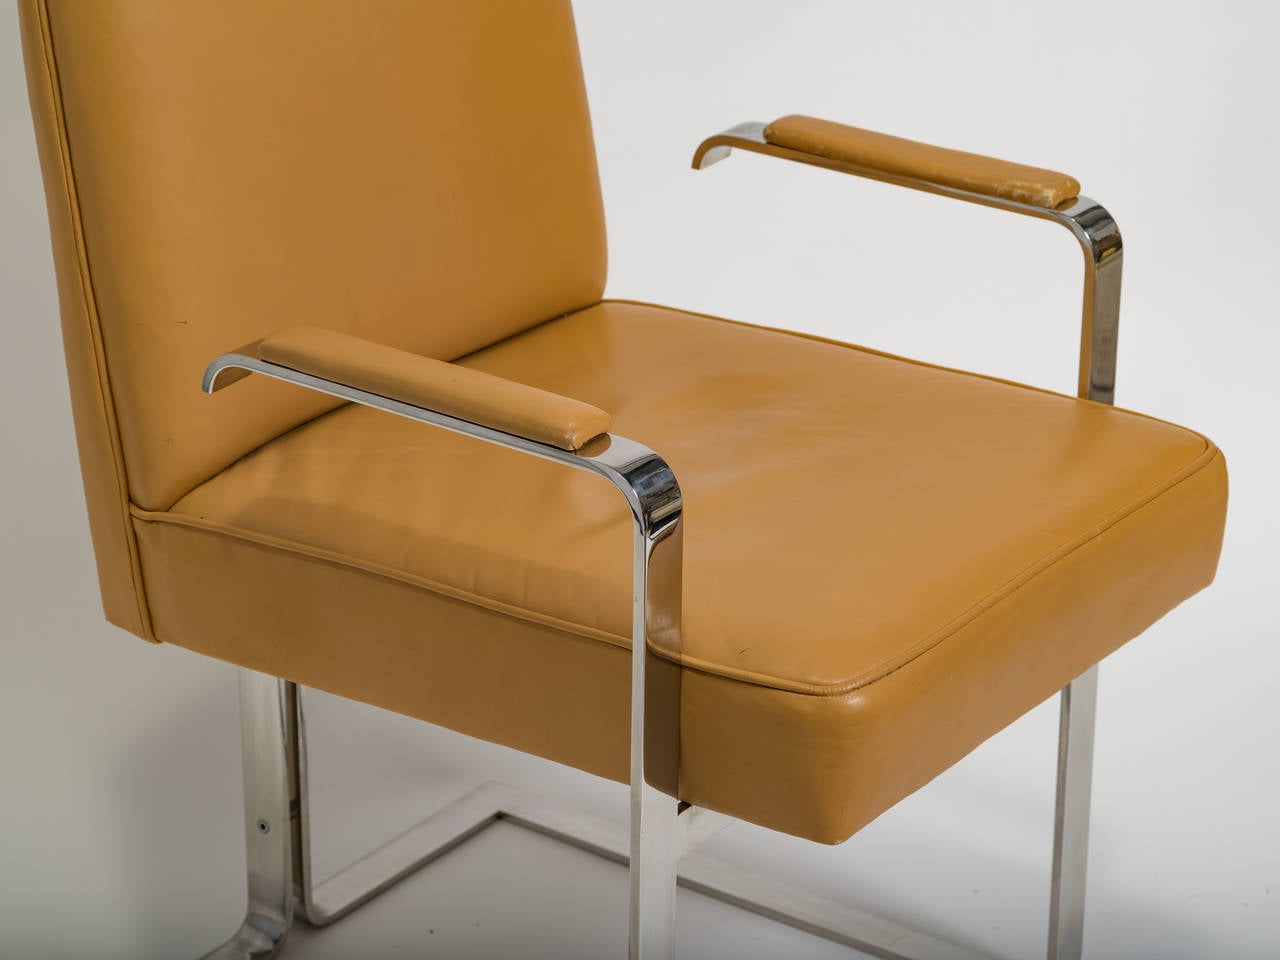 Late 20th Century Vladimir Kagan Chrome and Leather Chair For Sale